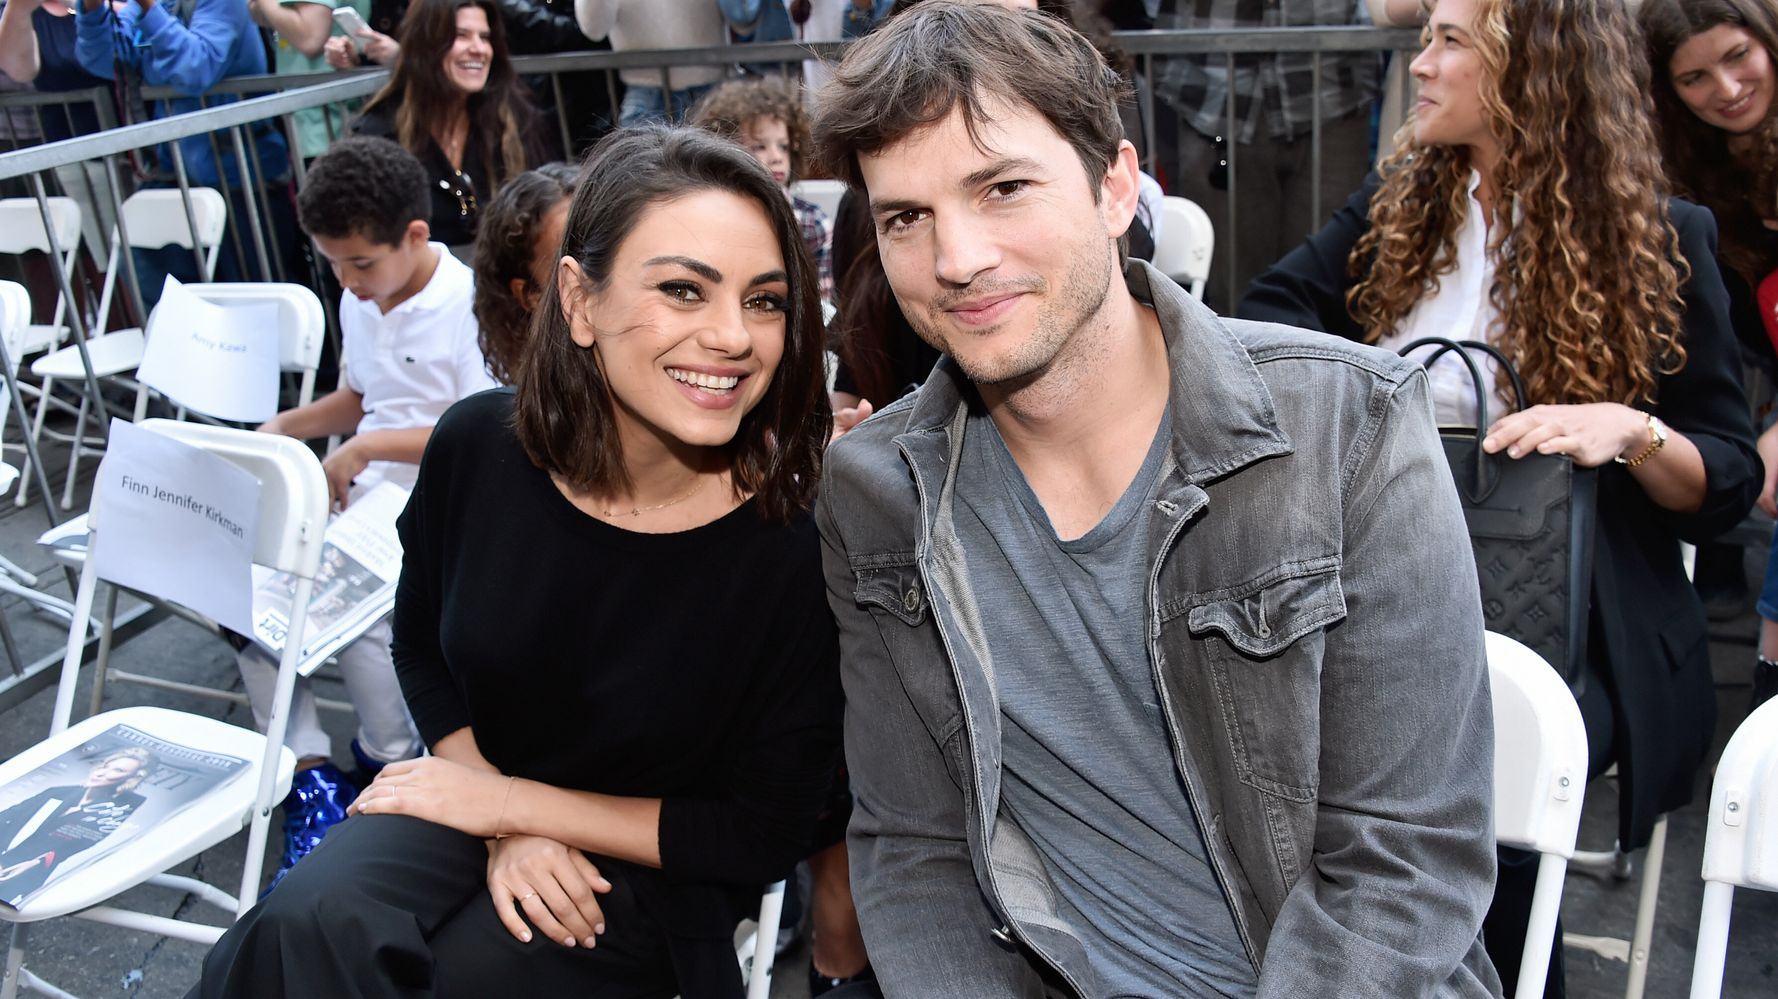 Sorry Ashton Kutcher, You Should Probably Wash Your Kids Before They're Visibly Dirty